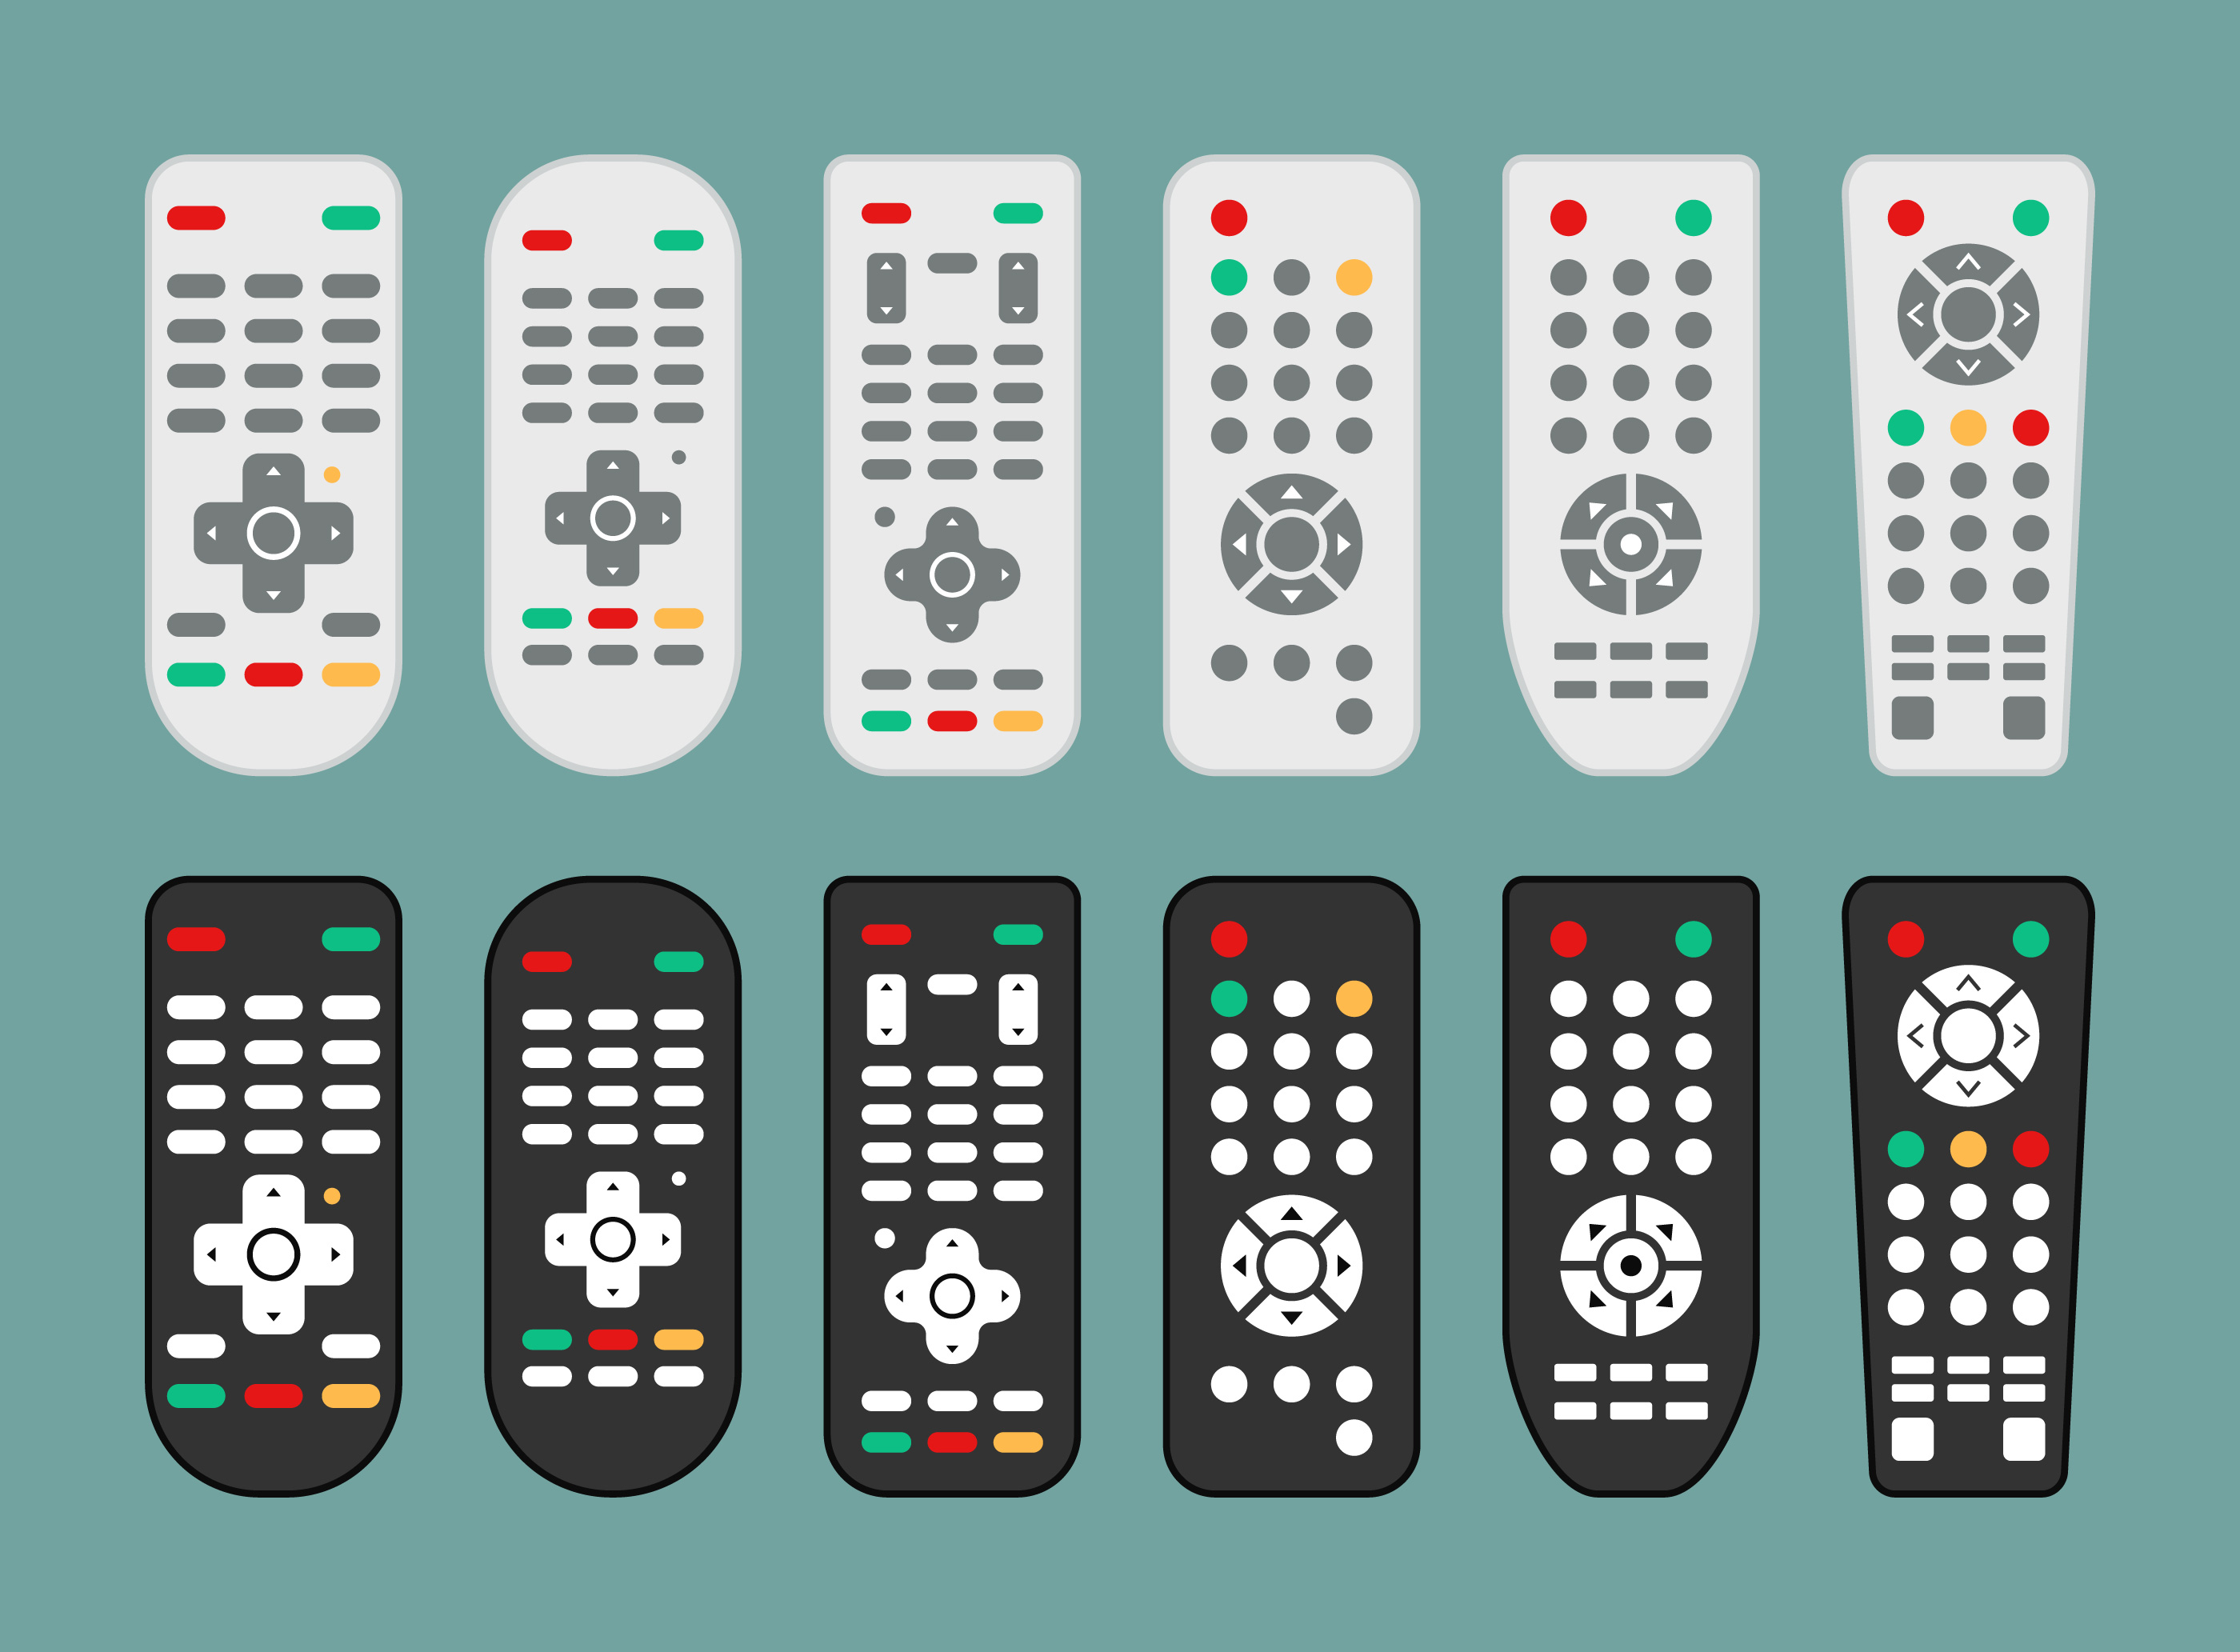 remote control or tv remote icons download free vector art stock